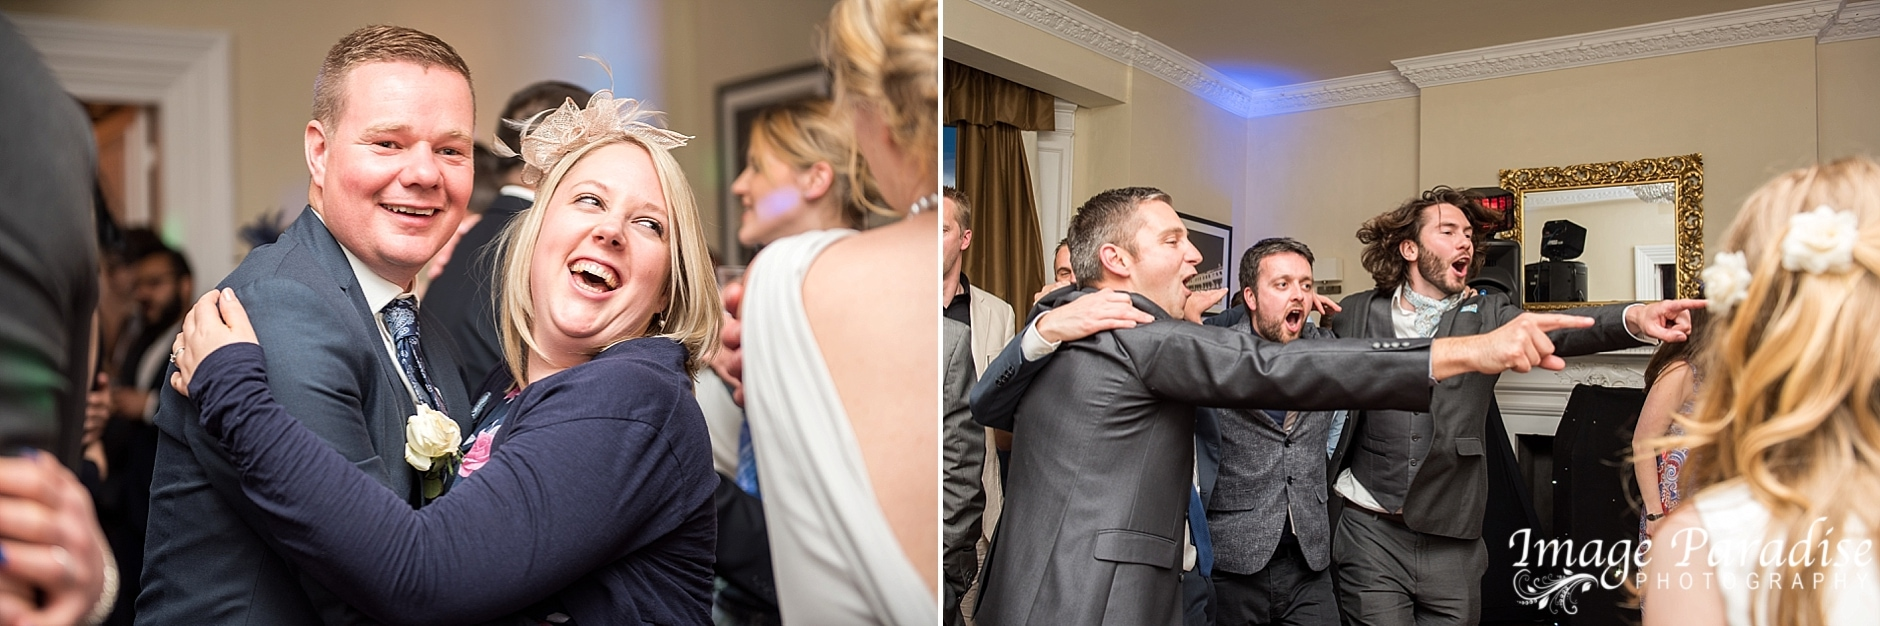 Dancing at reception of Avon Gorge Hotel wedding